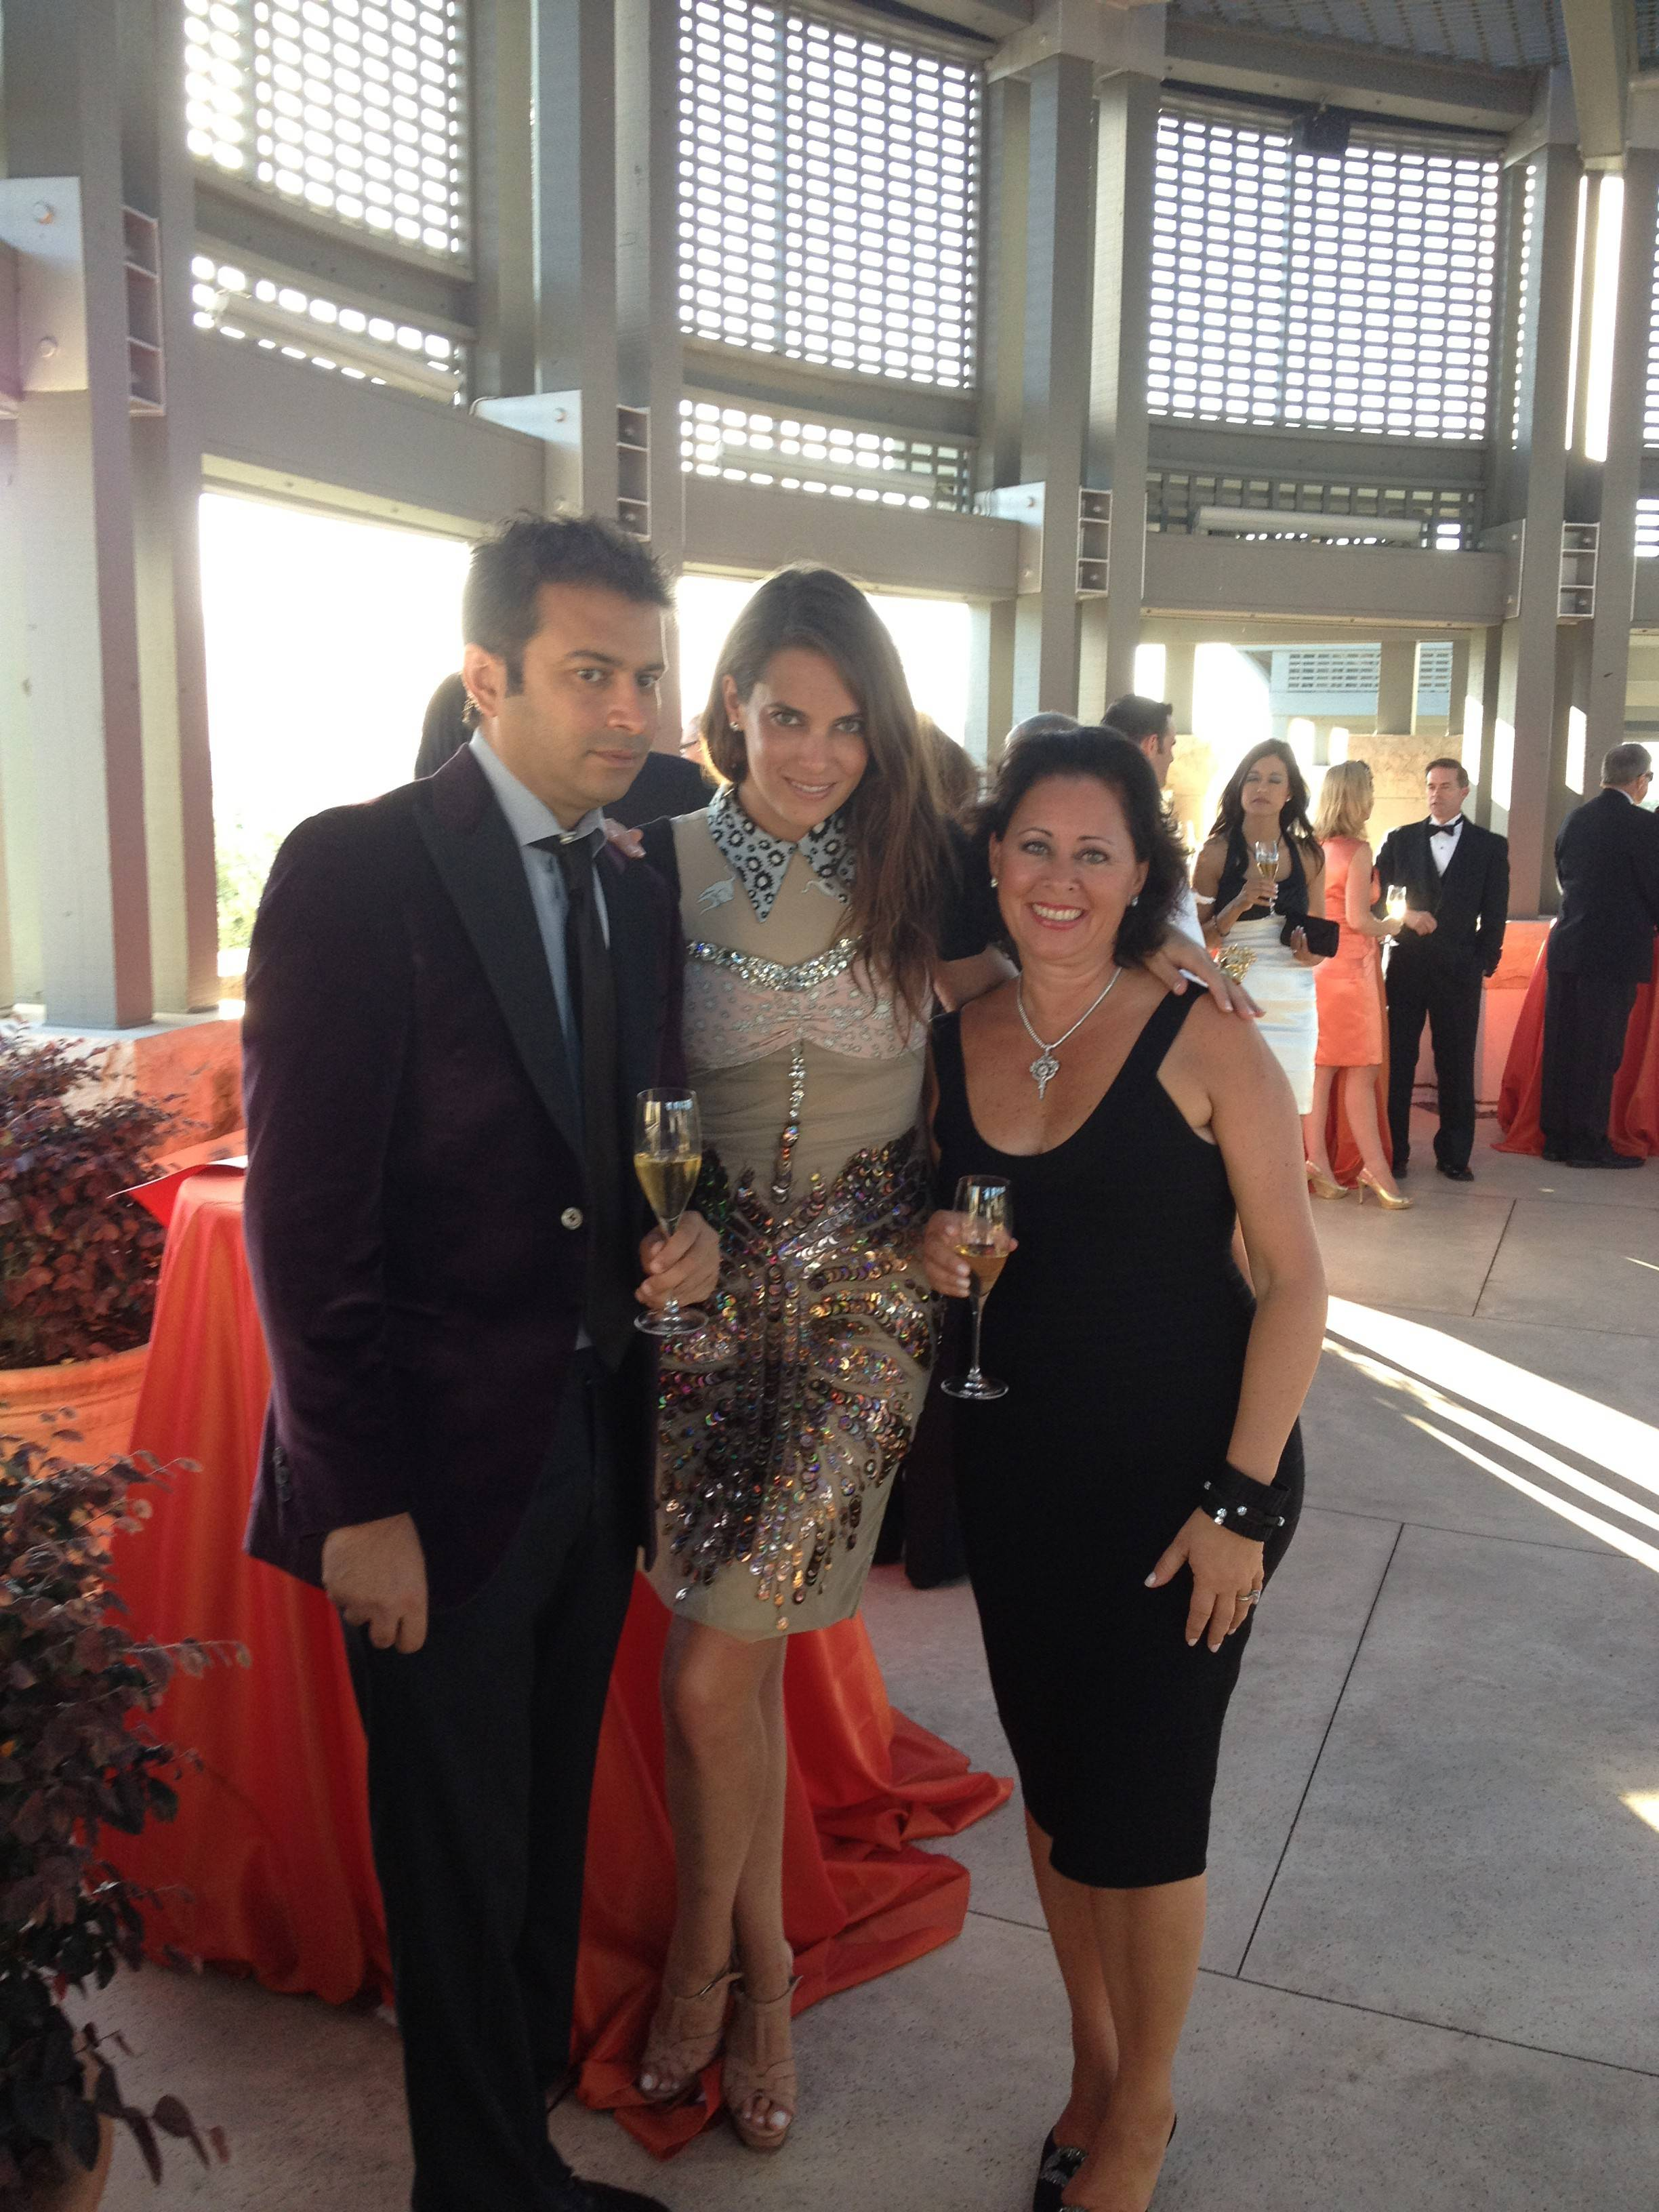 At the Opus One reception